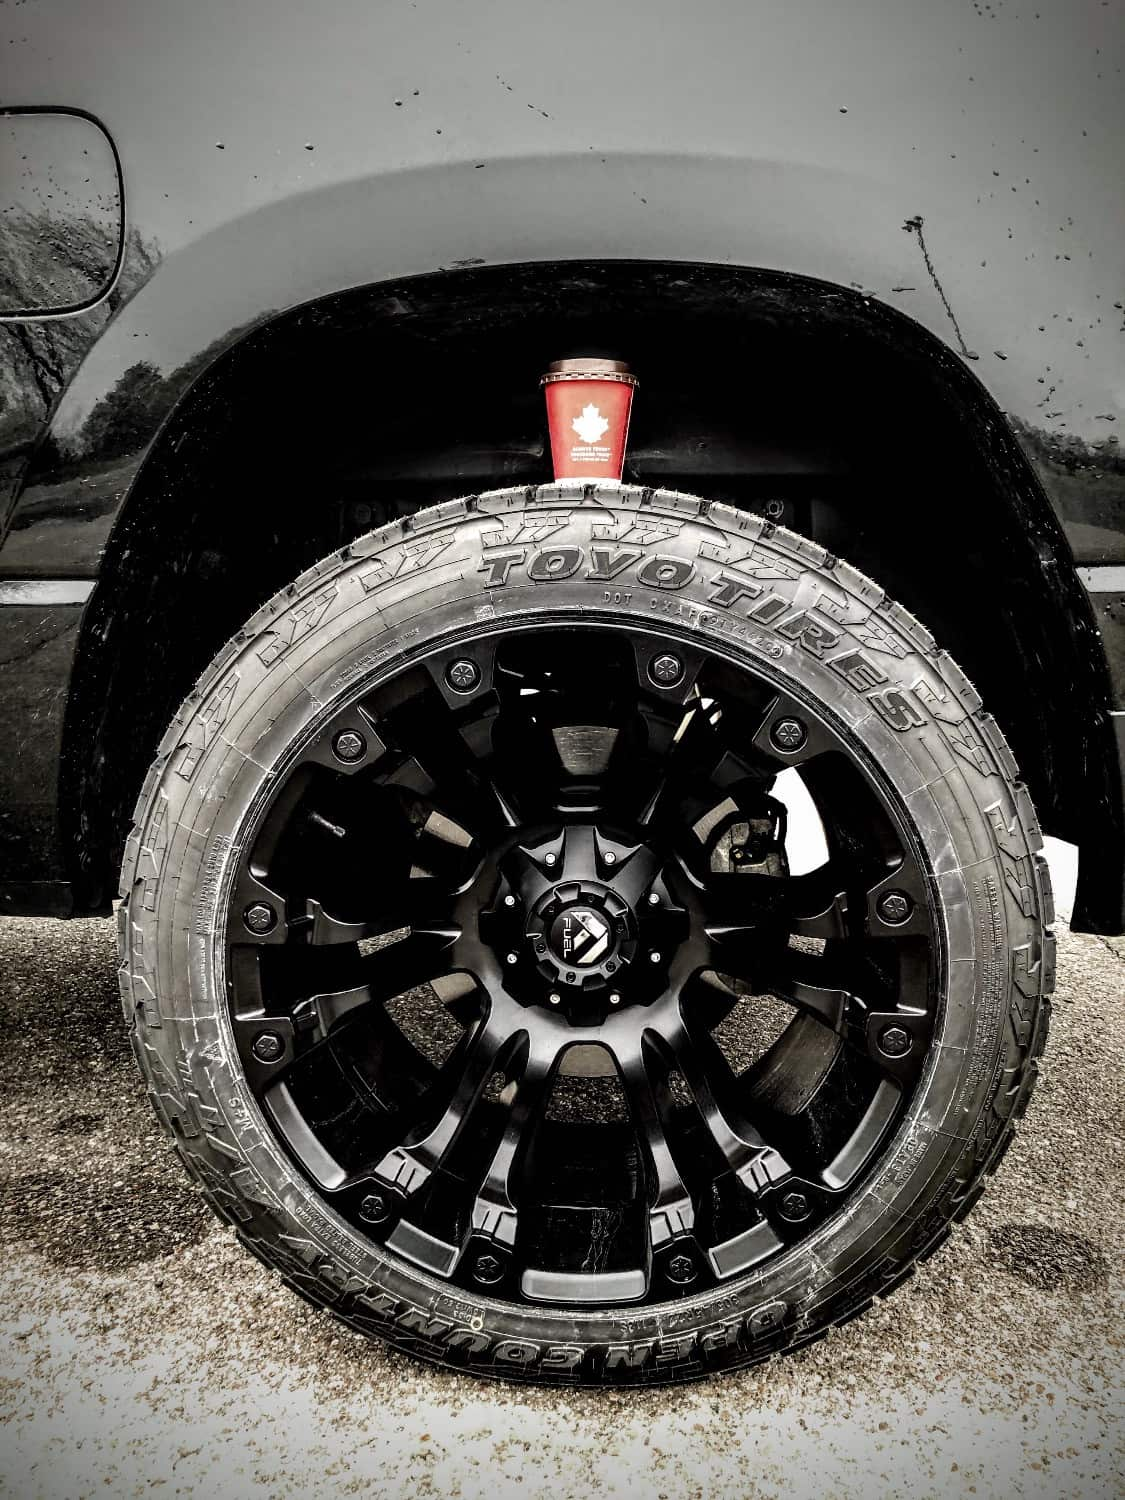 Another Tire shot of a 2020 Ram 1500 running some Toyo Open Country A/T III tires